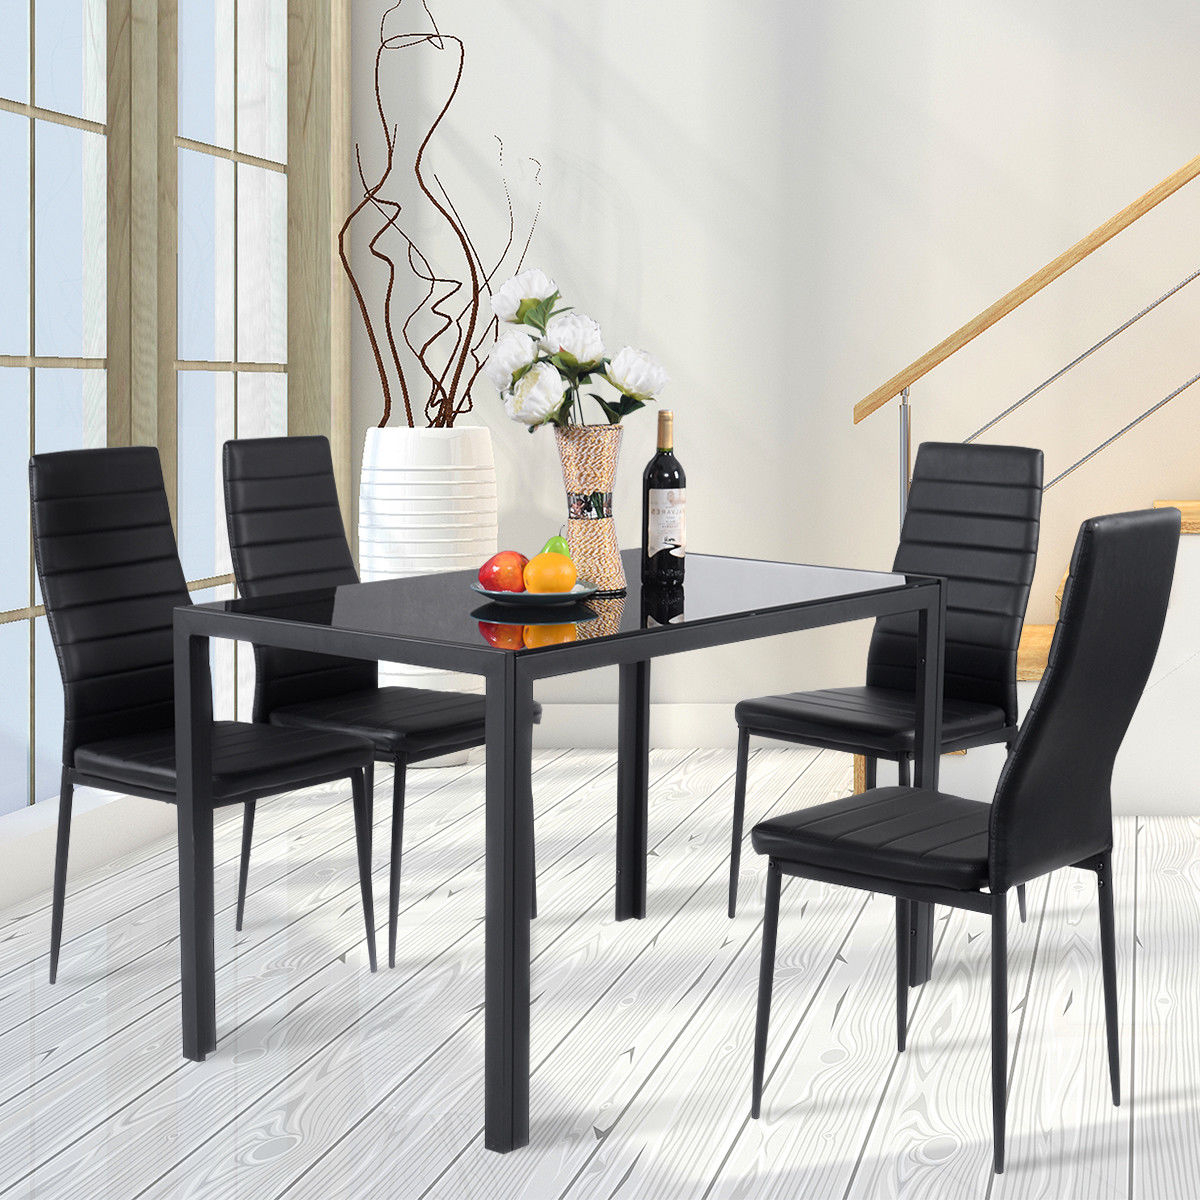 Costway: Costway 5 Piece Kitchen Dining Set Glass Metal Table And 4 Intended For Most Current Cargo 5 Piece Dining Sets (View 22 of 25)